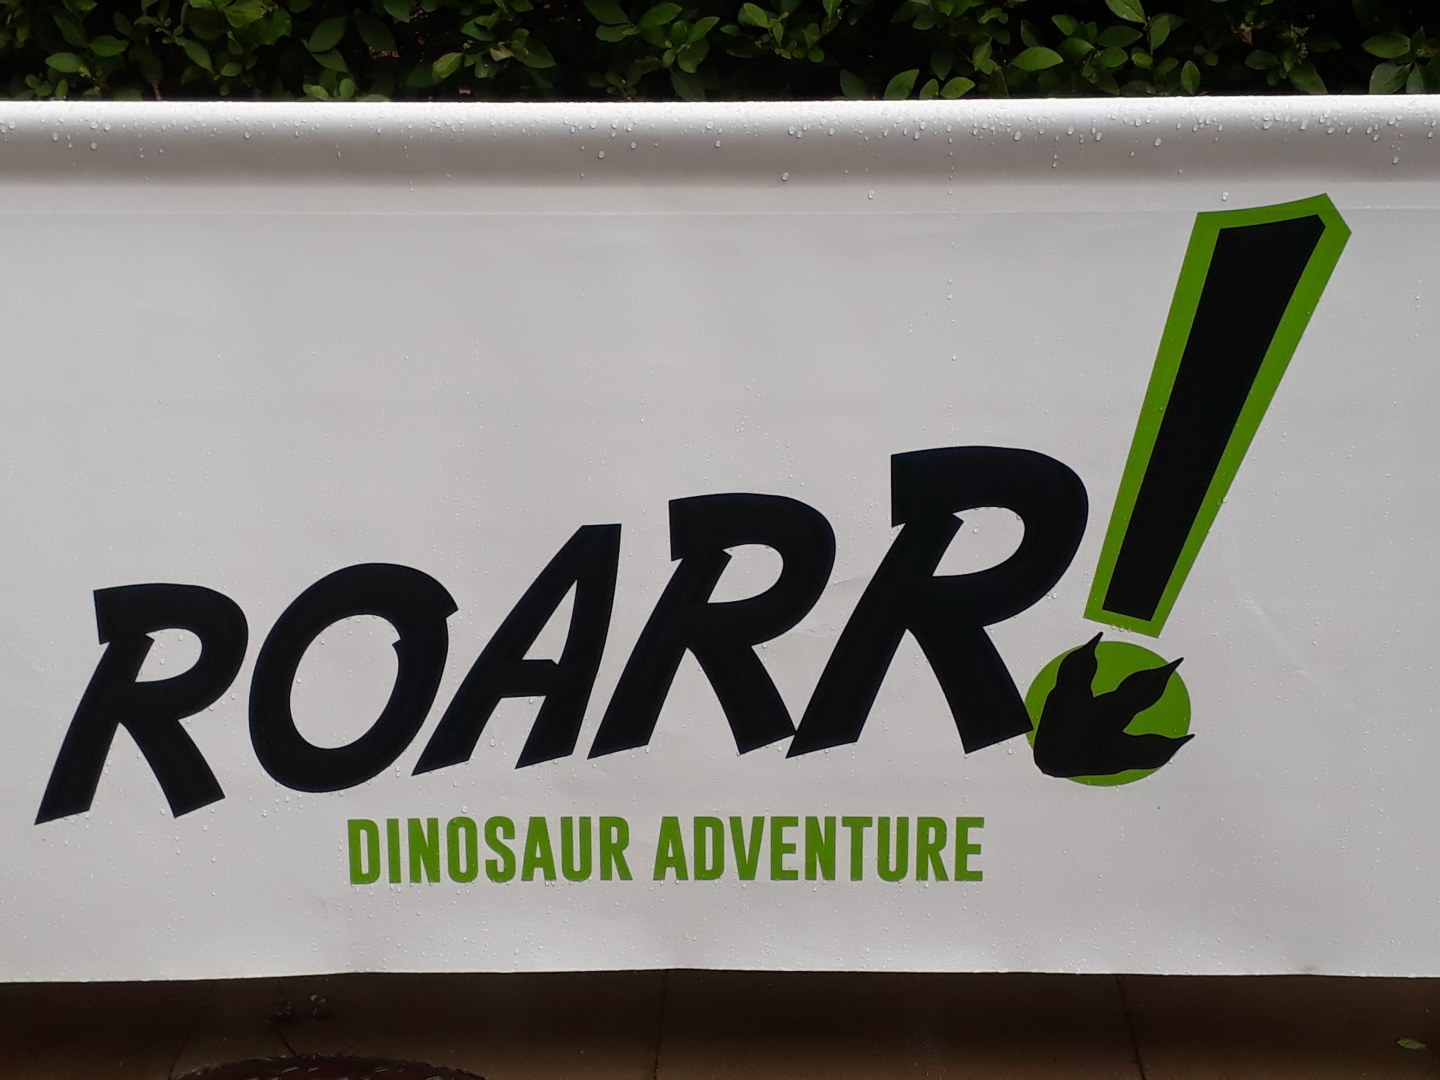 Roarr! Dinosaur Adventure Sign